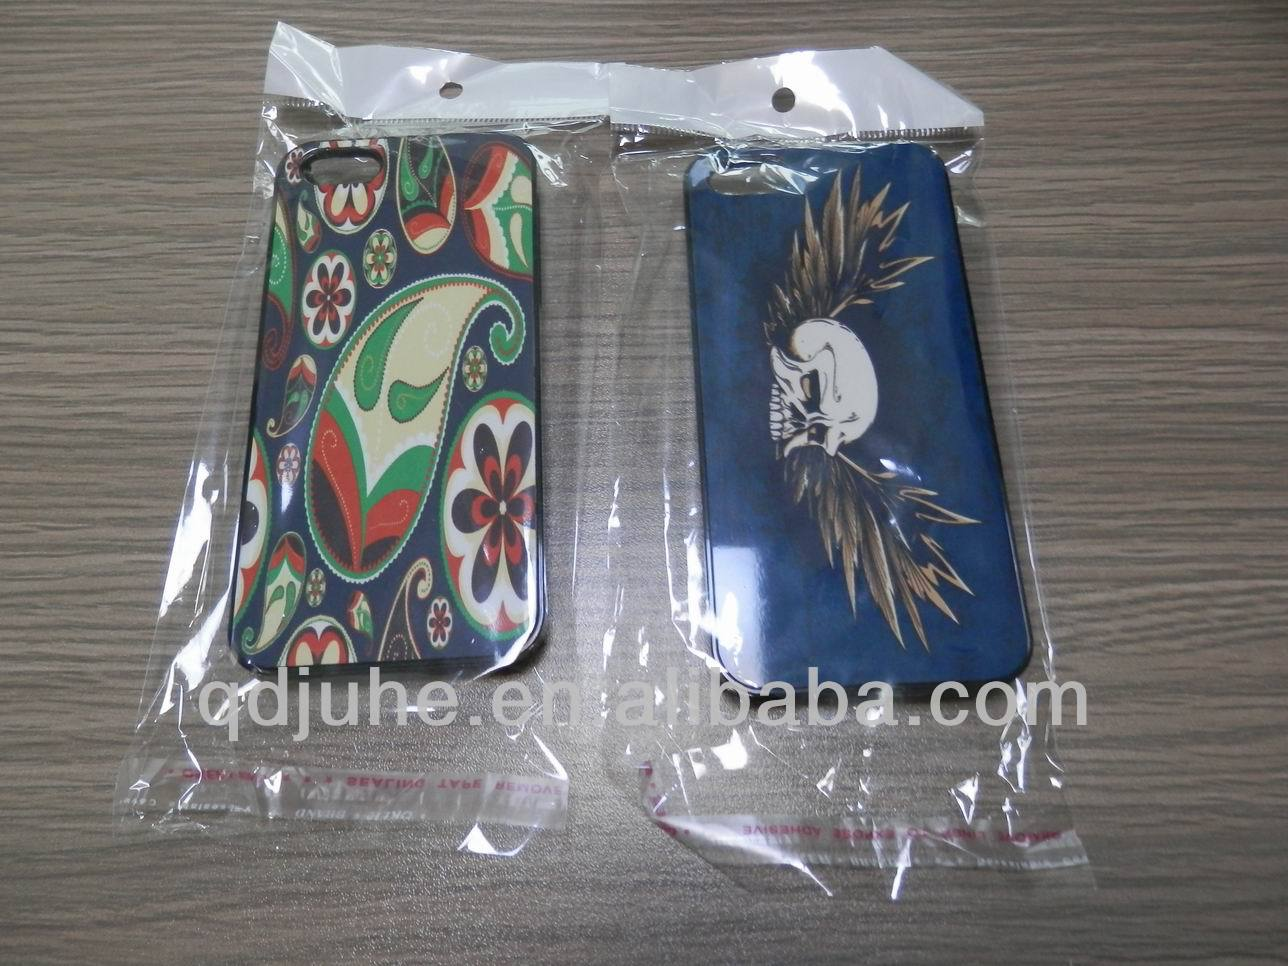 sublimation phone case for HTC M8 mini